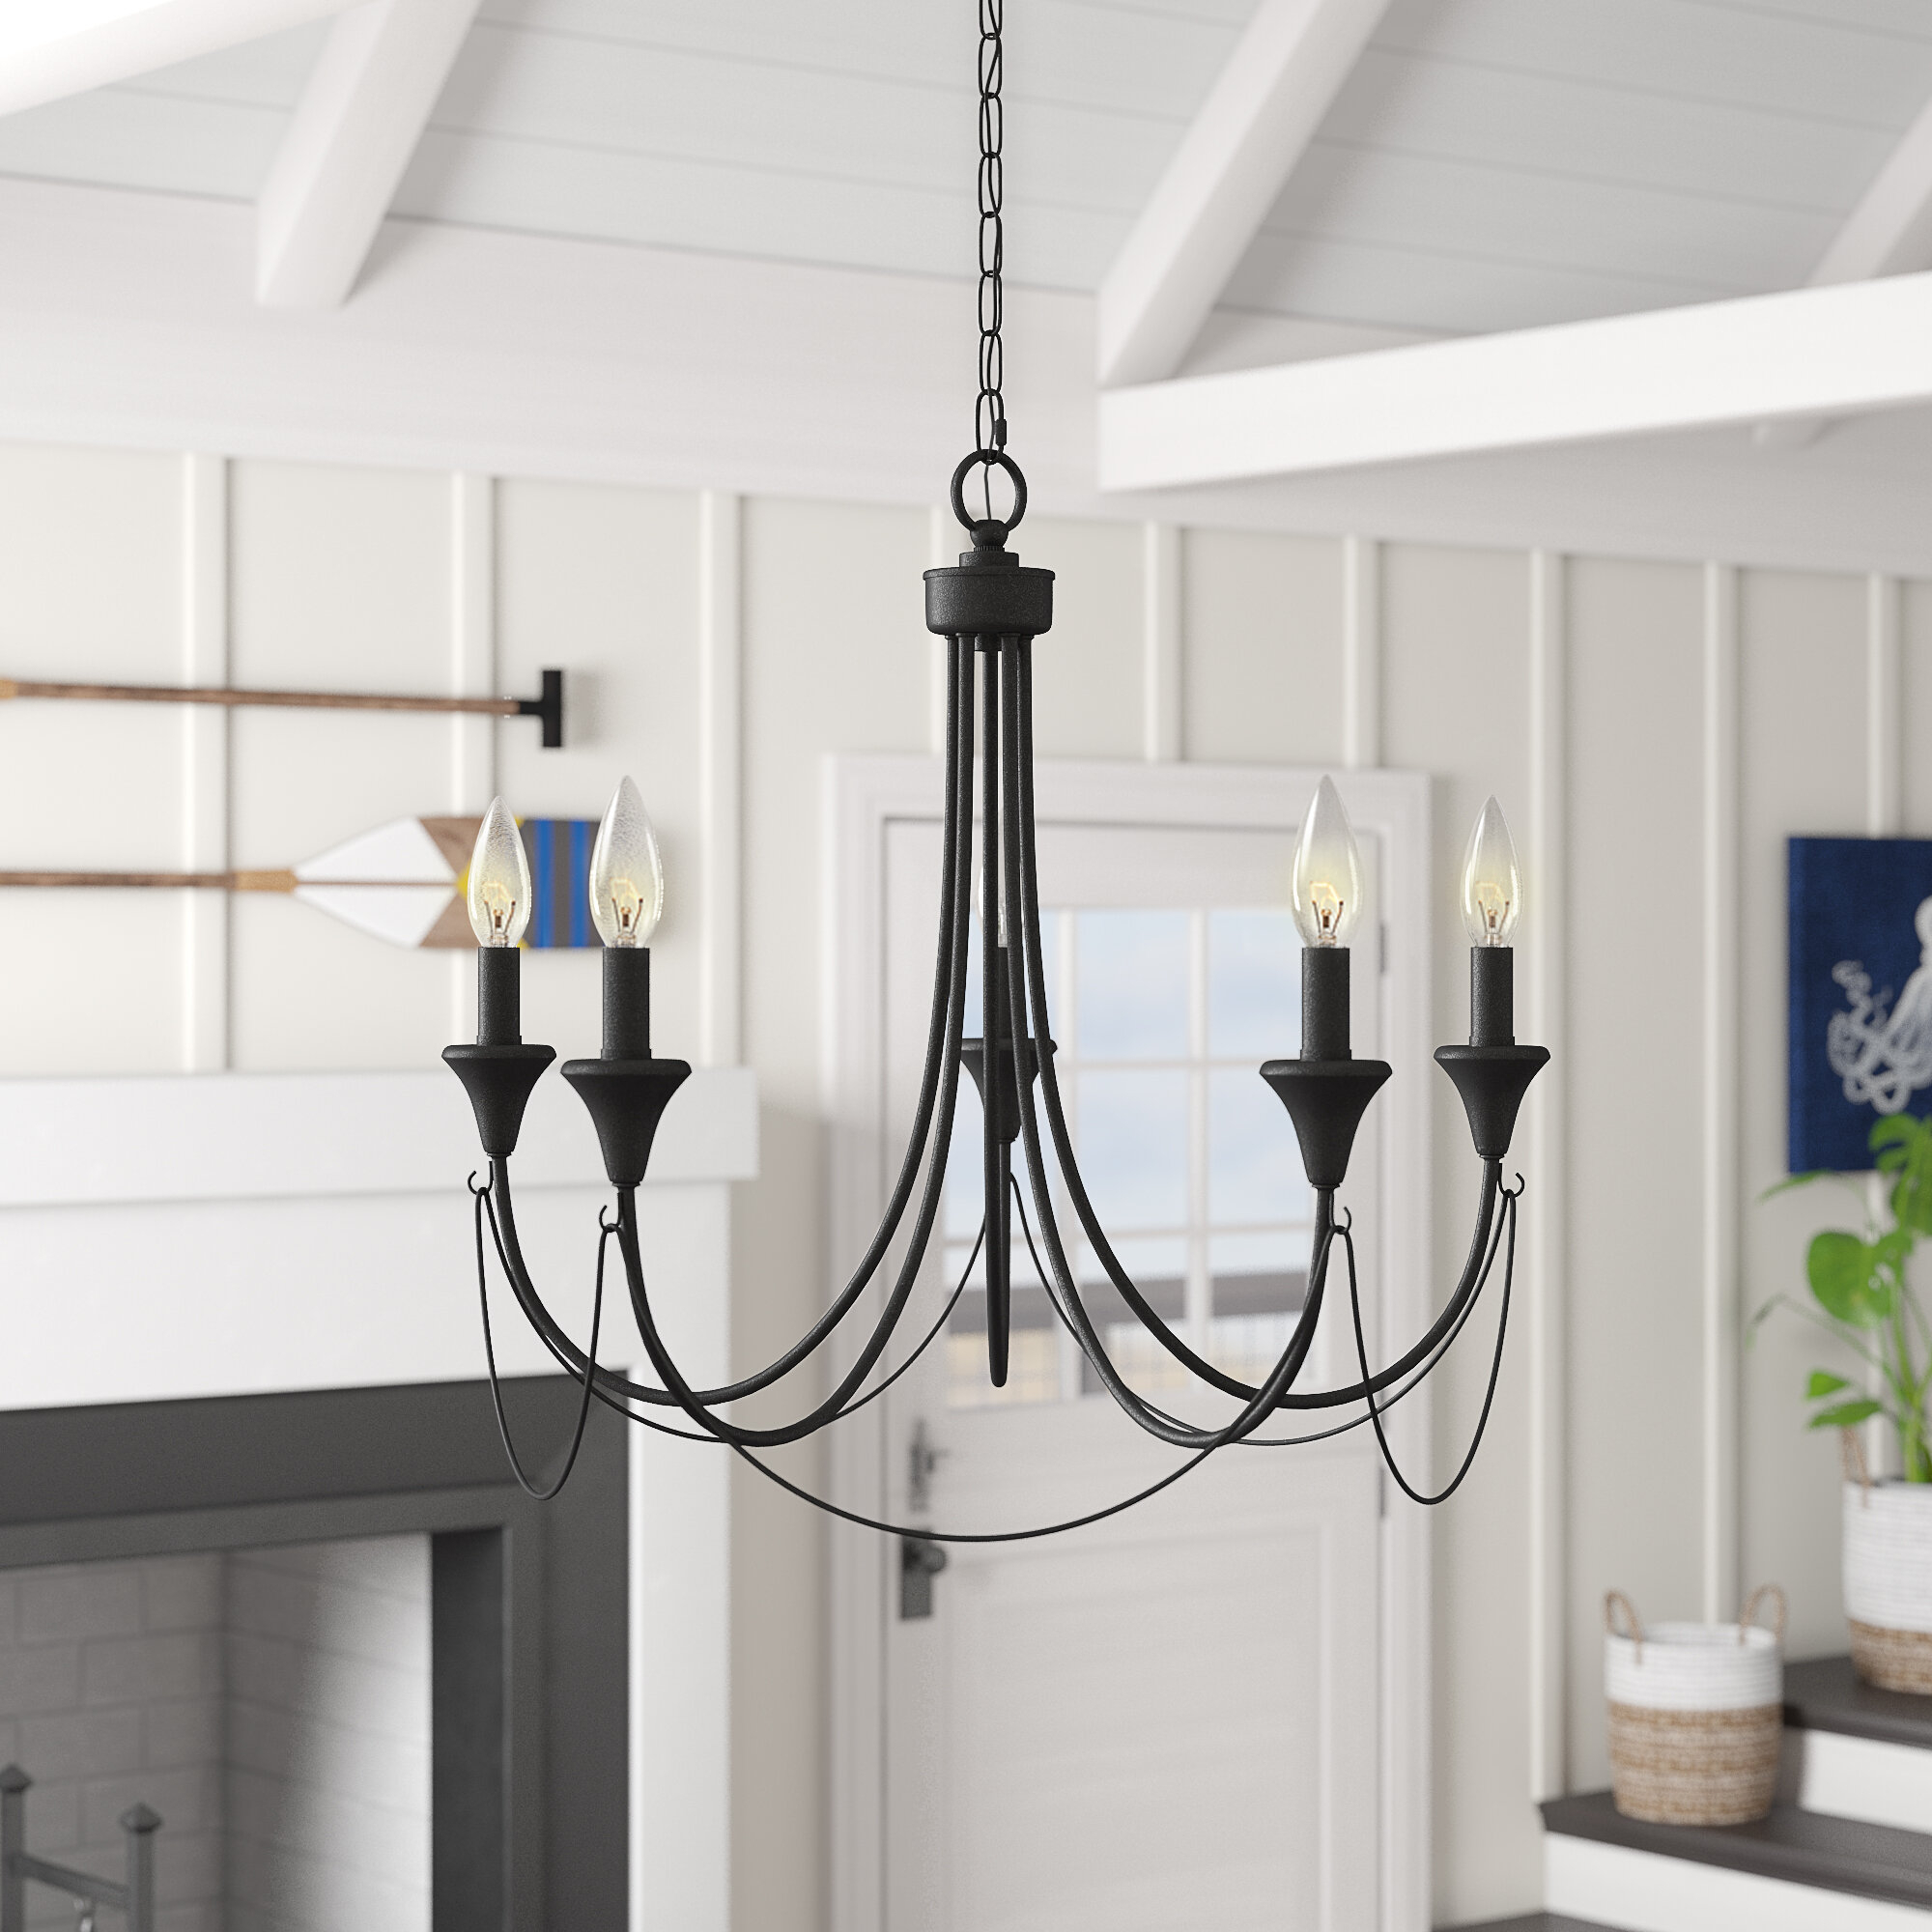 Walczak 5-Light Candle Style Chandelier with regard to Shaylee 5-Light Candle Style Chandeliers (Image 28 of 30)